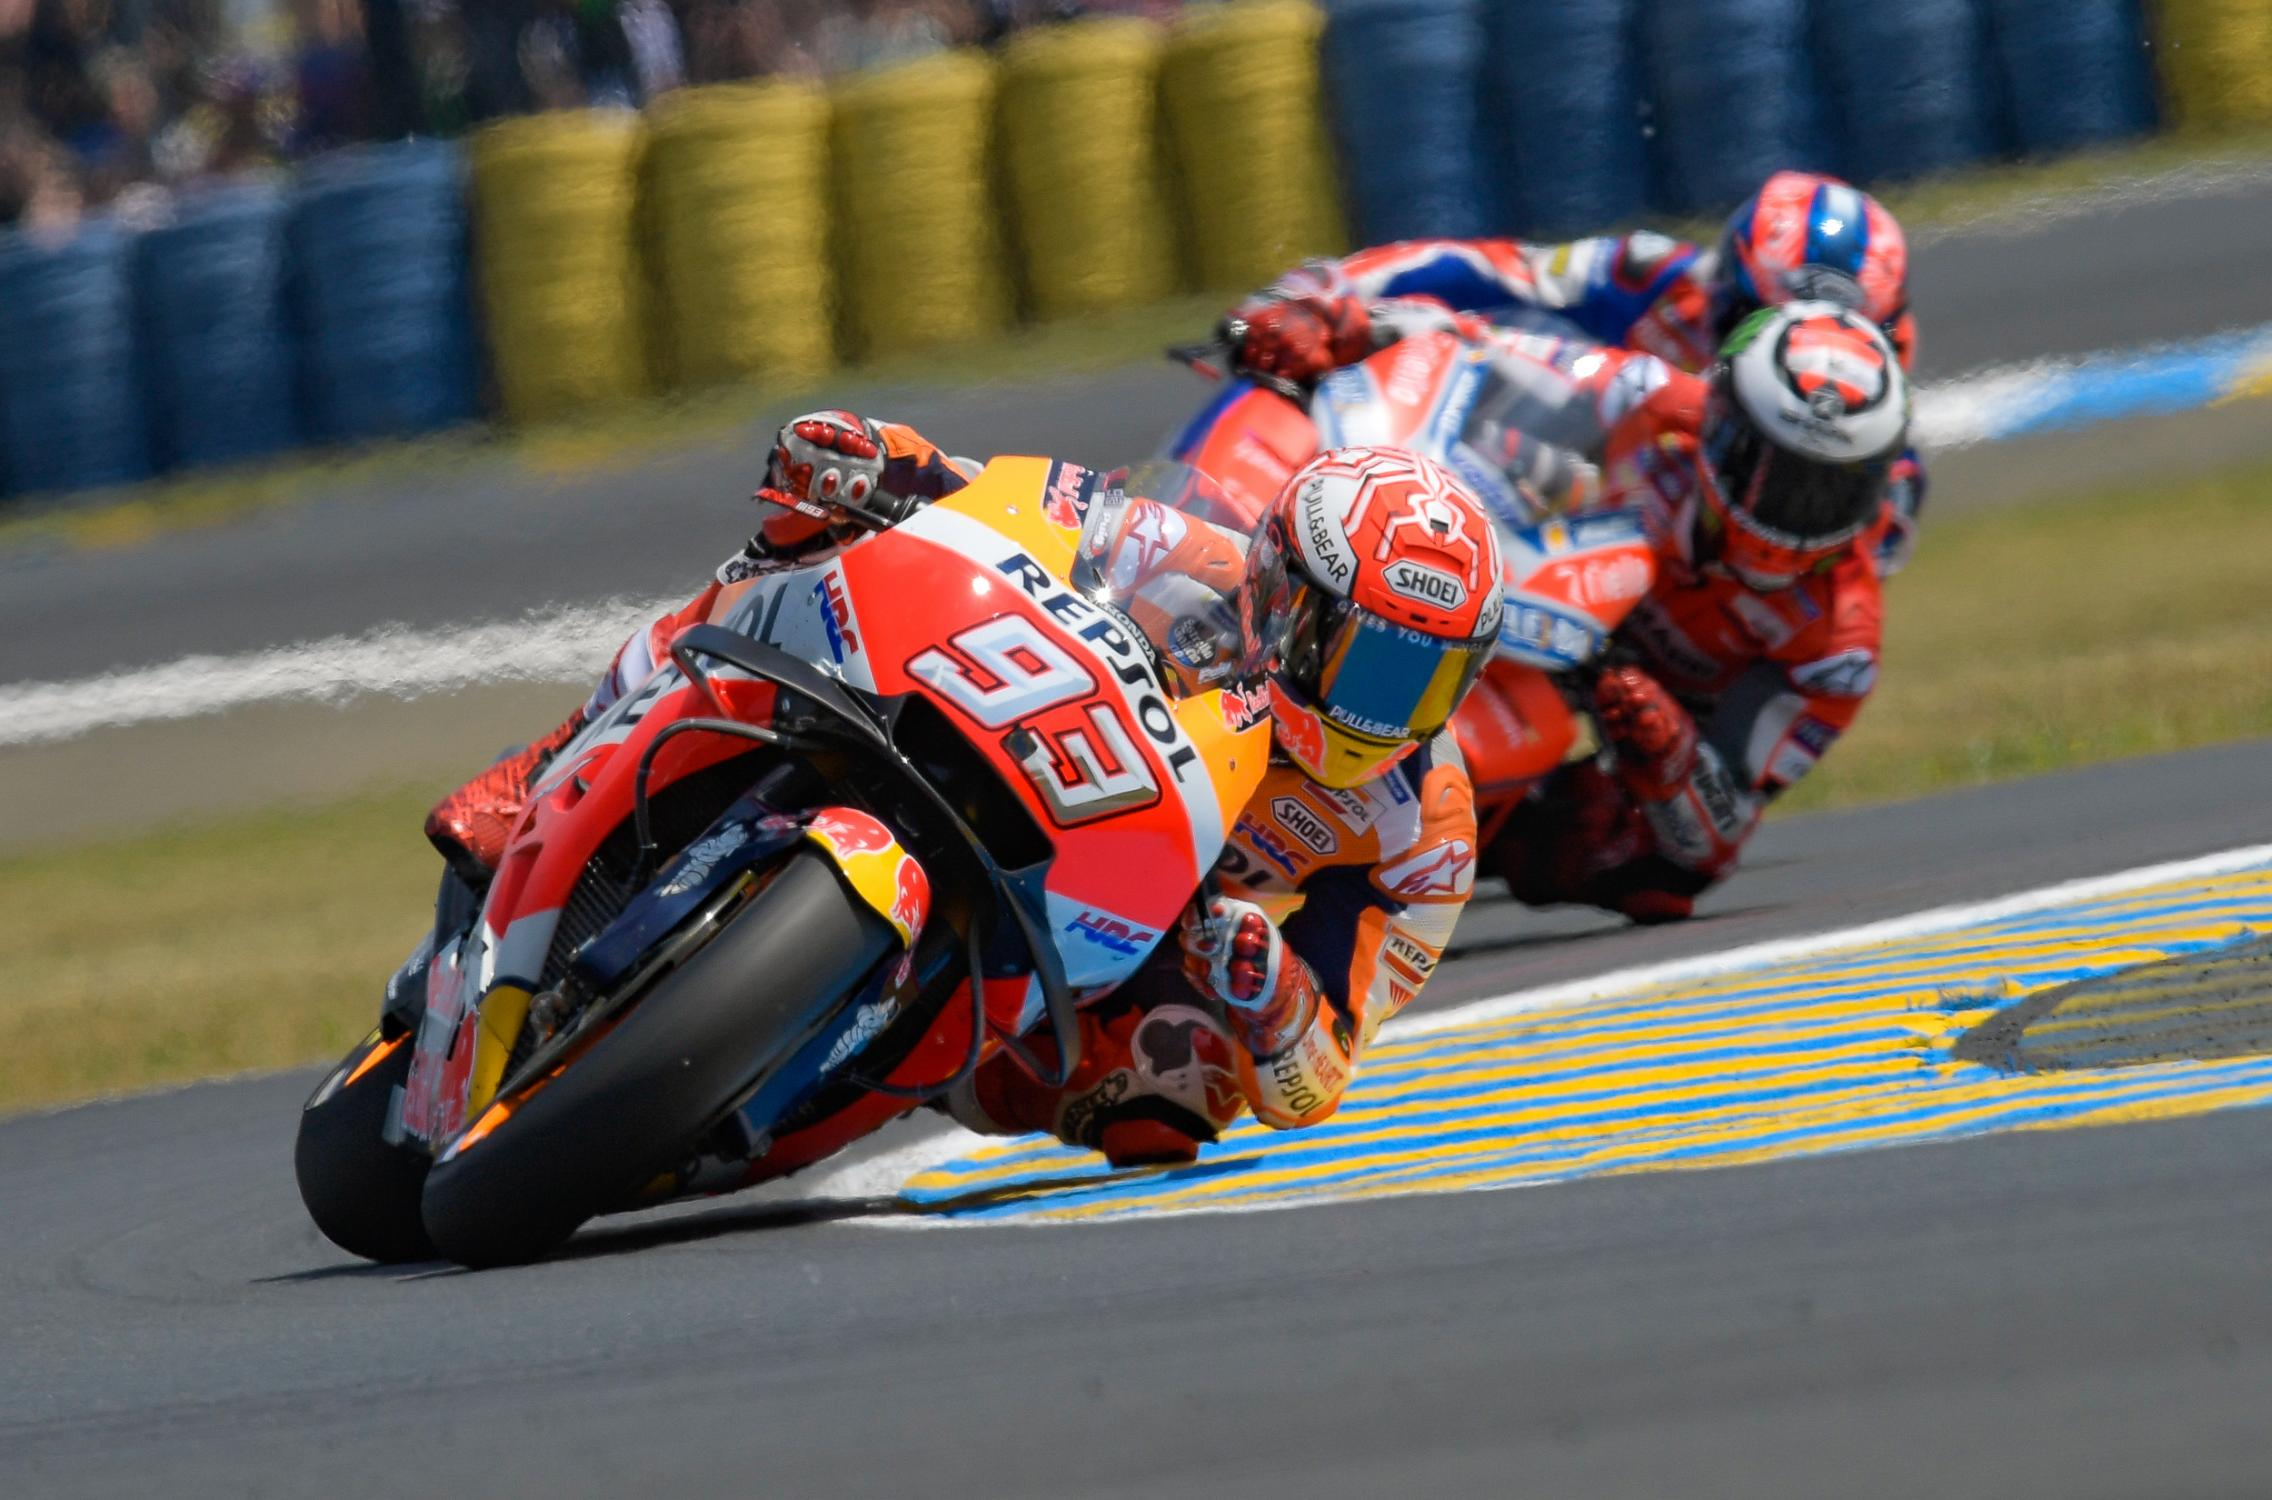 93-marc-marquez-esp_ds53330.gallery_full_top_fullscreen.jpg